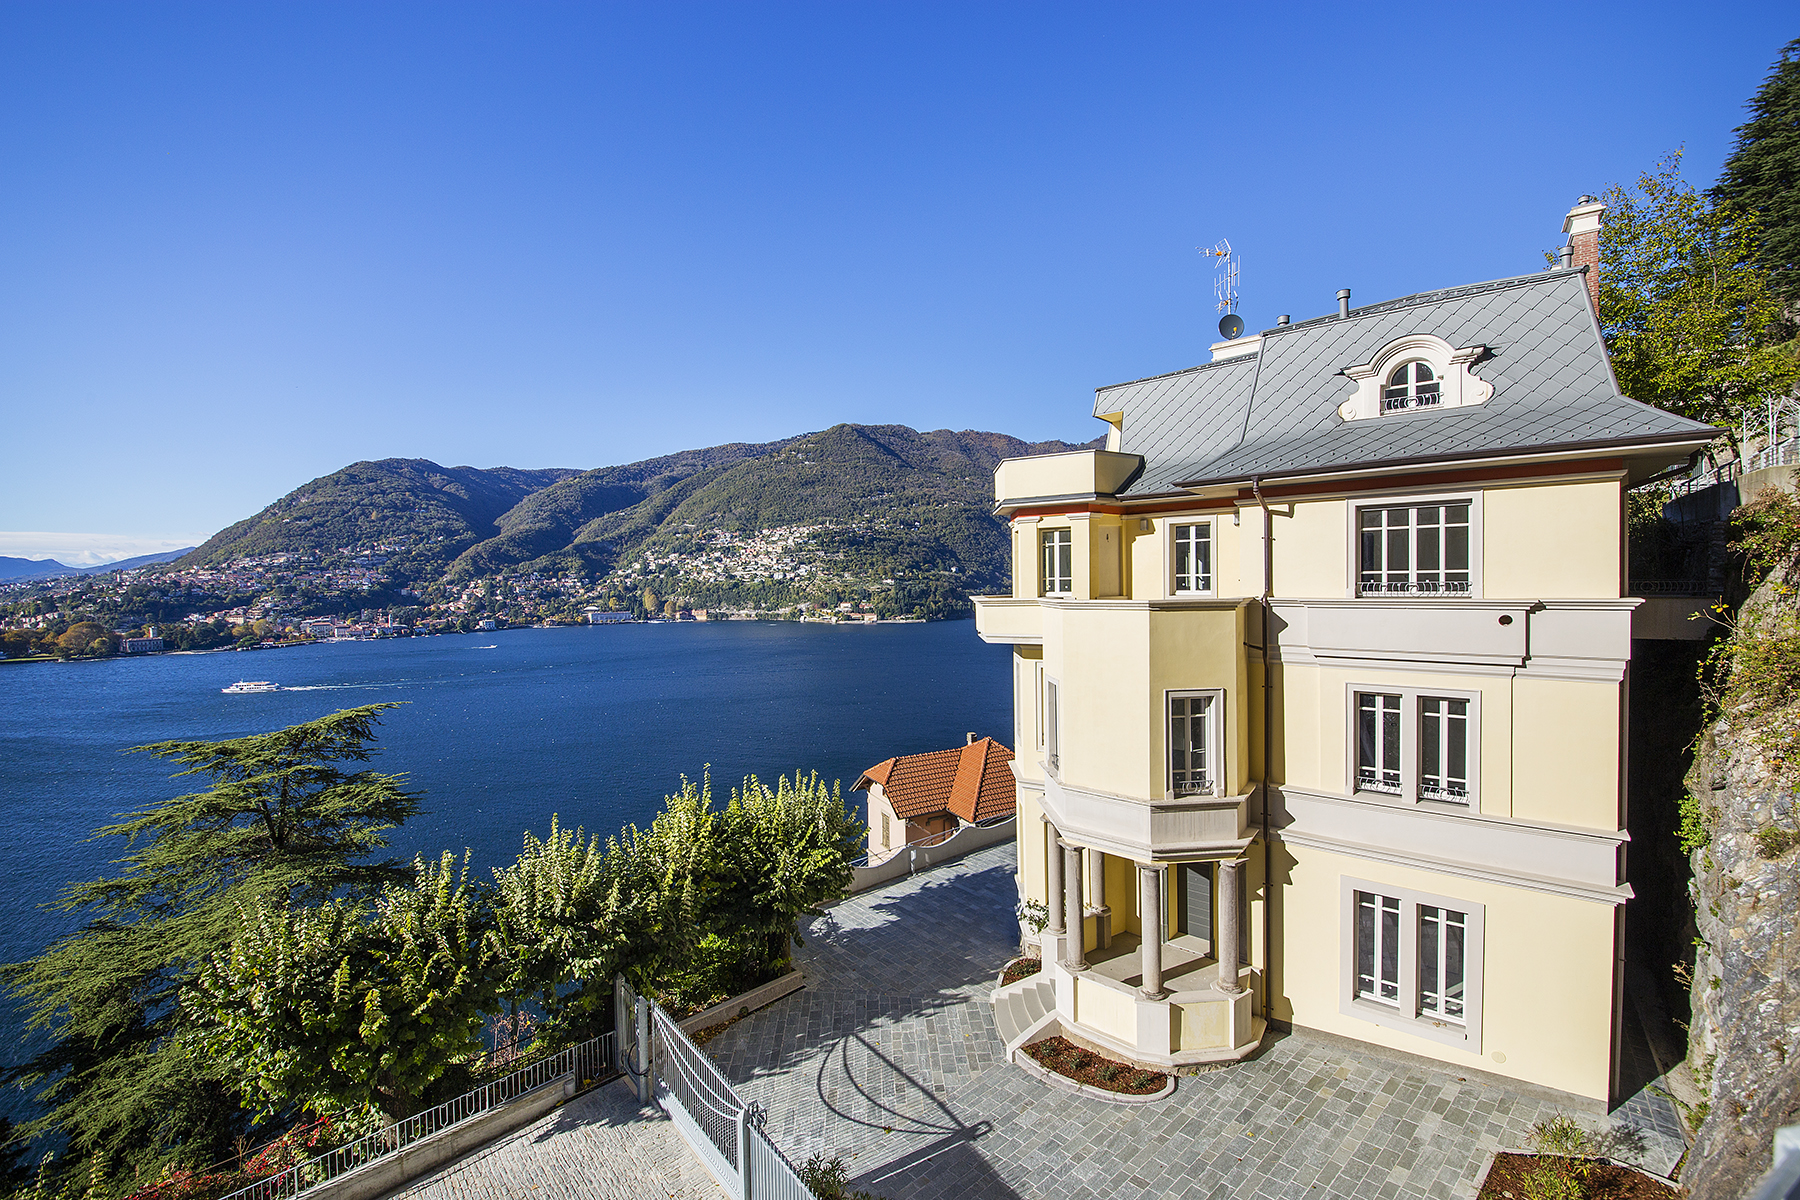 Apartment for Sale at Stunning apartment in historical villa of the late 19th century Blevio, Como, Italy